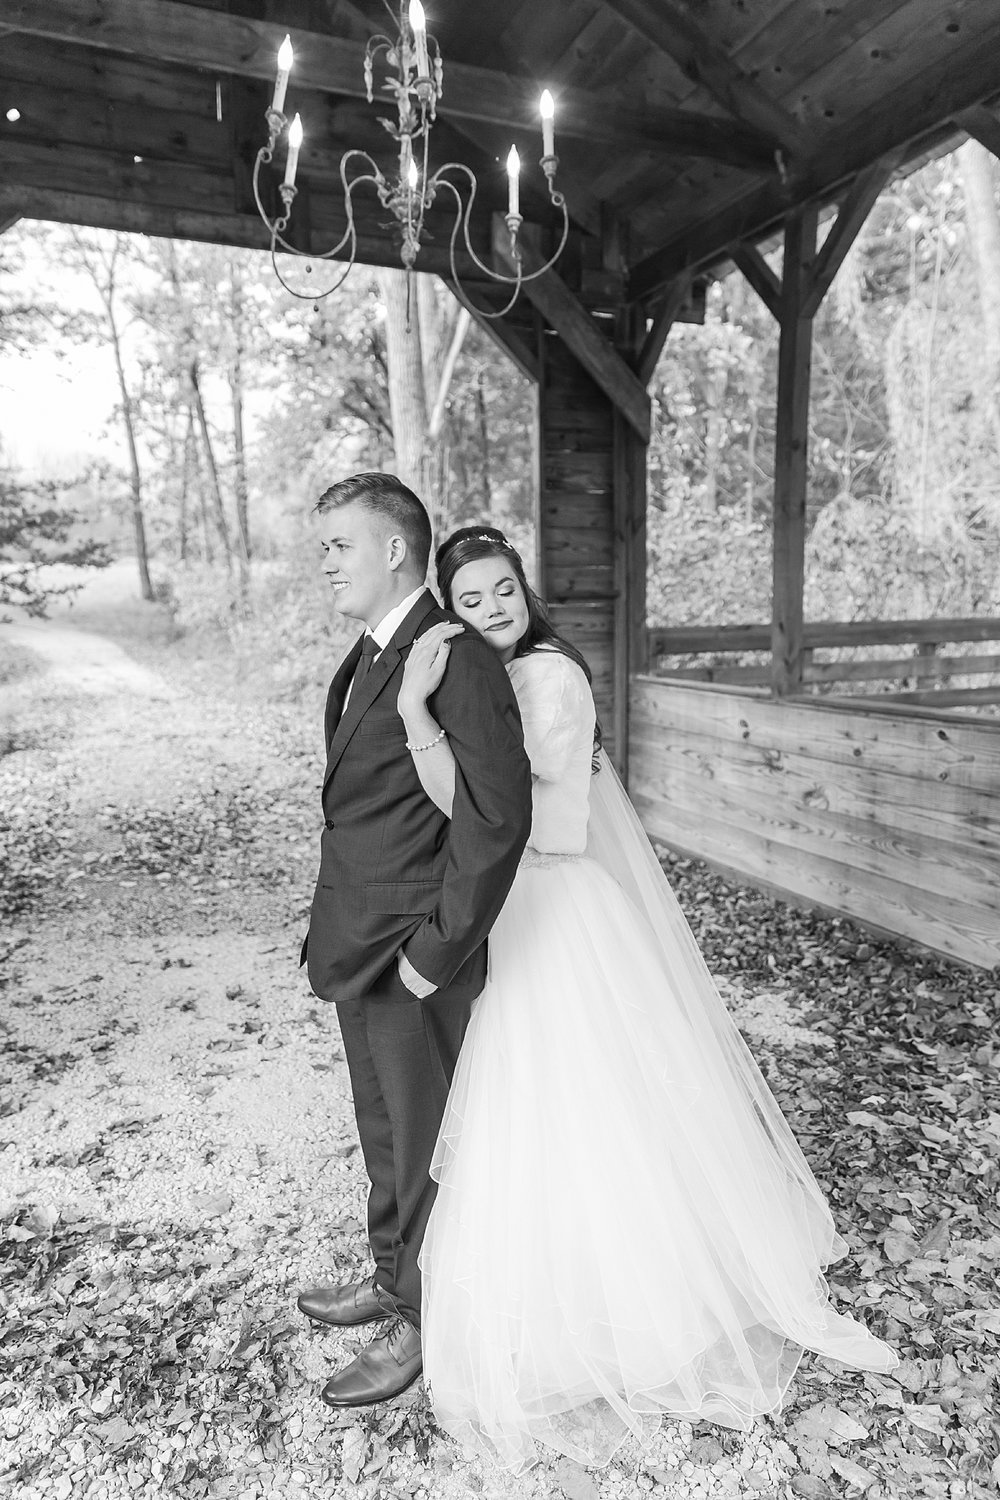 rustic-whimsical-wedding-photos-the-vale-royal-barn-in-fenton-michigan-by-courtney-carolyn-photography_0042.jpg